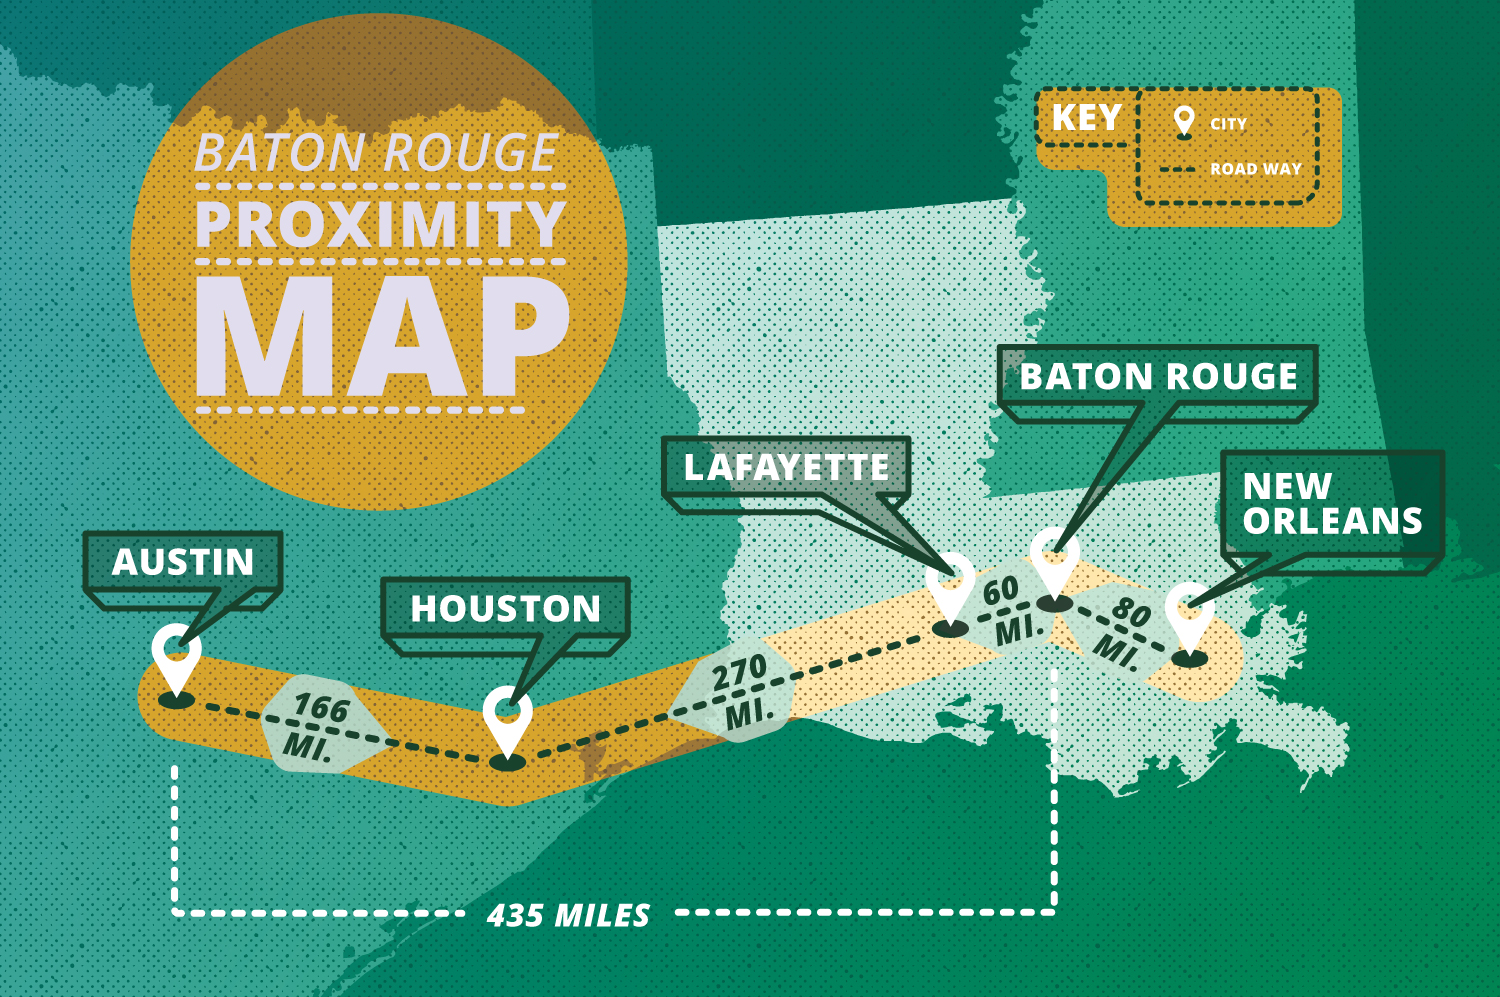 Baton Rouge Proximity Map: graphic showing distance of Baton Rouge to New Orleans, Lafayette, Houston, Austin, with Louisiana state shape in background